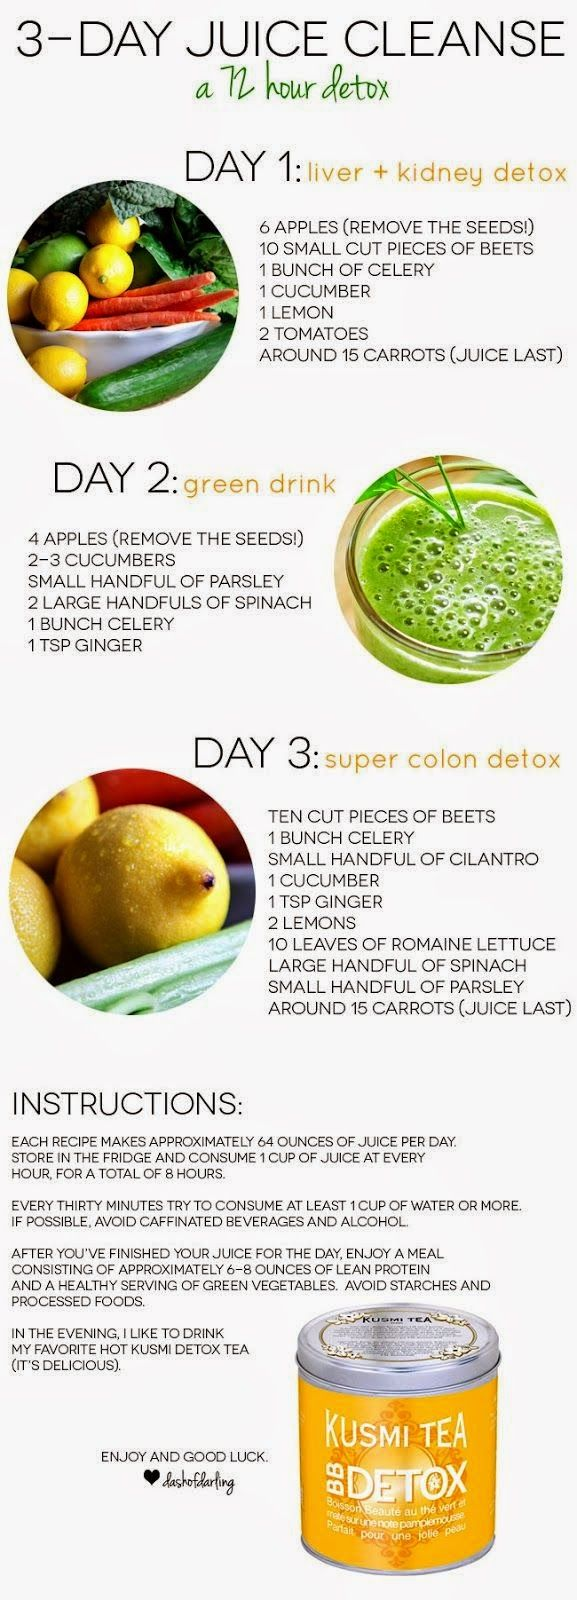 997 best juicing images on pinterest detox drinks healthy 997 best juicing images on pinterest detox drinks healthy living and smoothie recipes malvernweather Choice Image